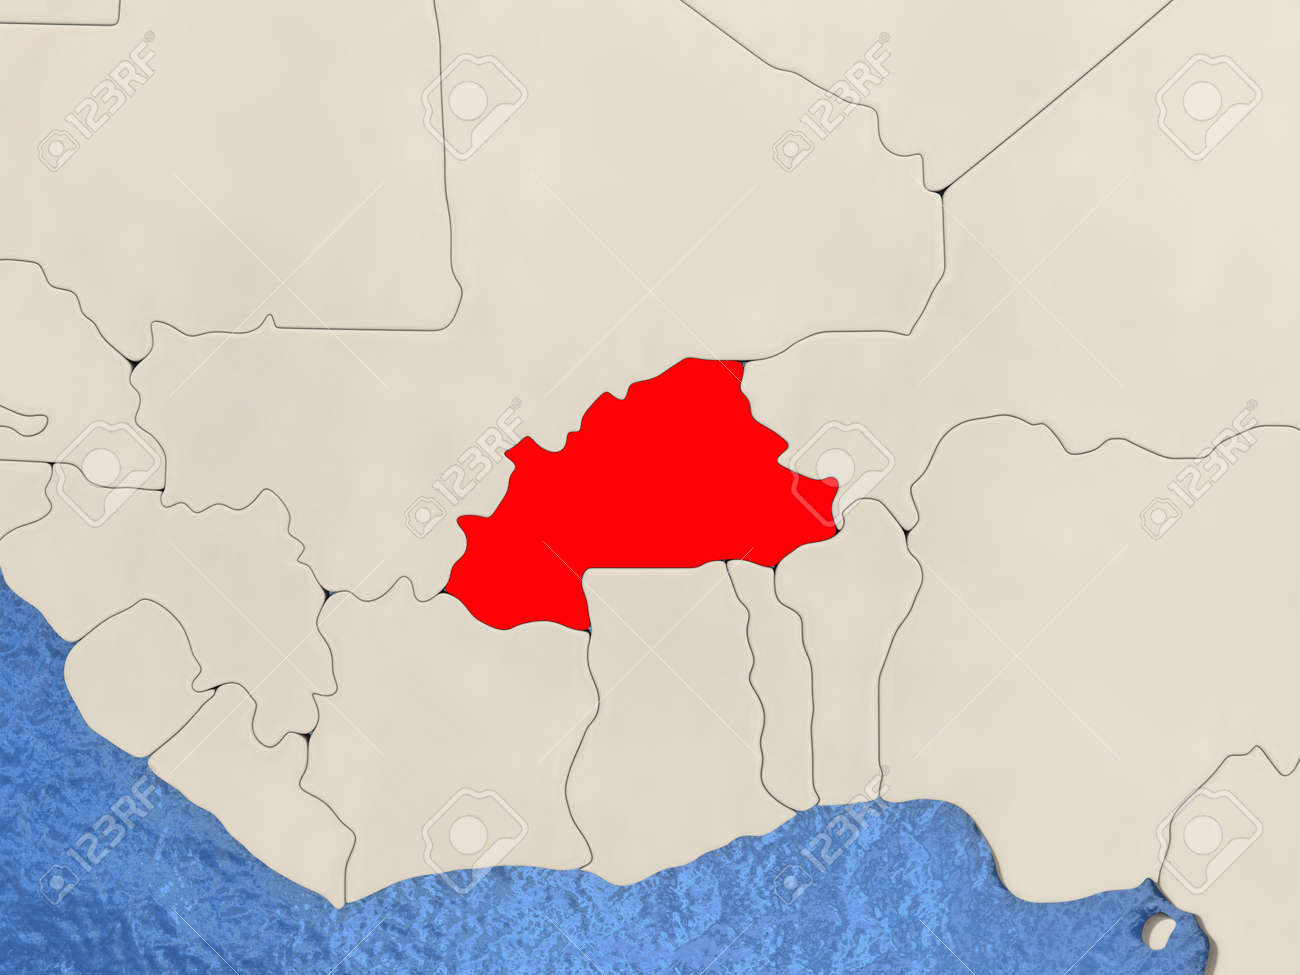 Burkina Faso In Red On Political Map With Watery Oceans 3D